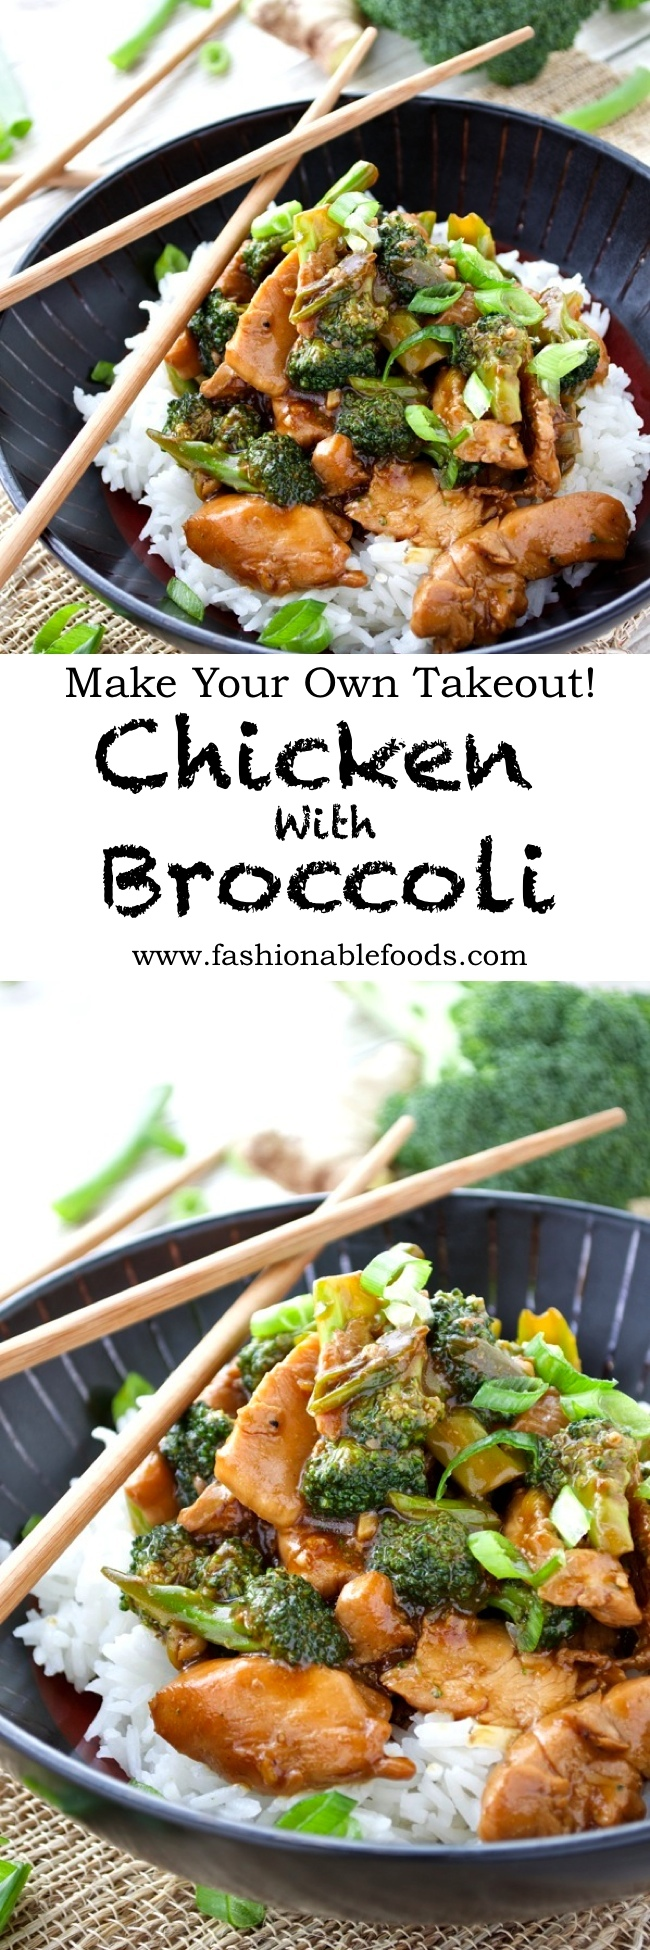 Chicken and broccoli fashionable foods pinterest forumfinder Choice Image